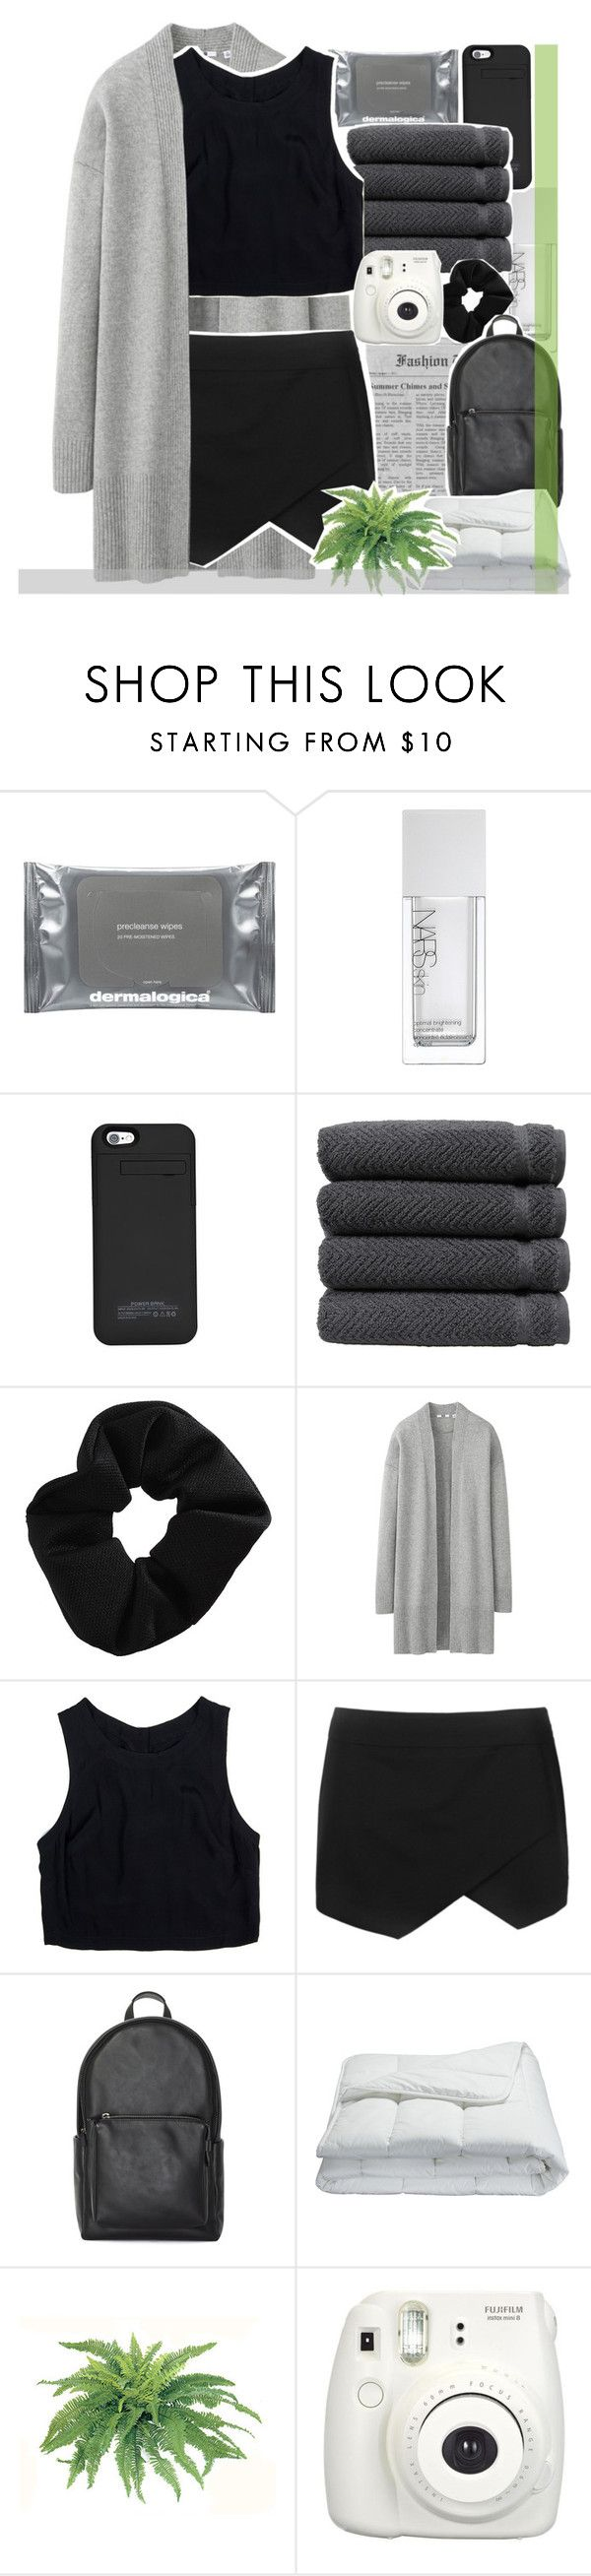 """""""⠀⠀⠀THROUGH THE CURTAINS OF THE WATERFALL"""" by oreokk22 ❤ liked on Polyvore featuring Dermalogica, NARS Cosmetics, Linum Home Textiles, Topshop, Uniqlo, Lush Clothing and Frette"""